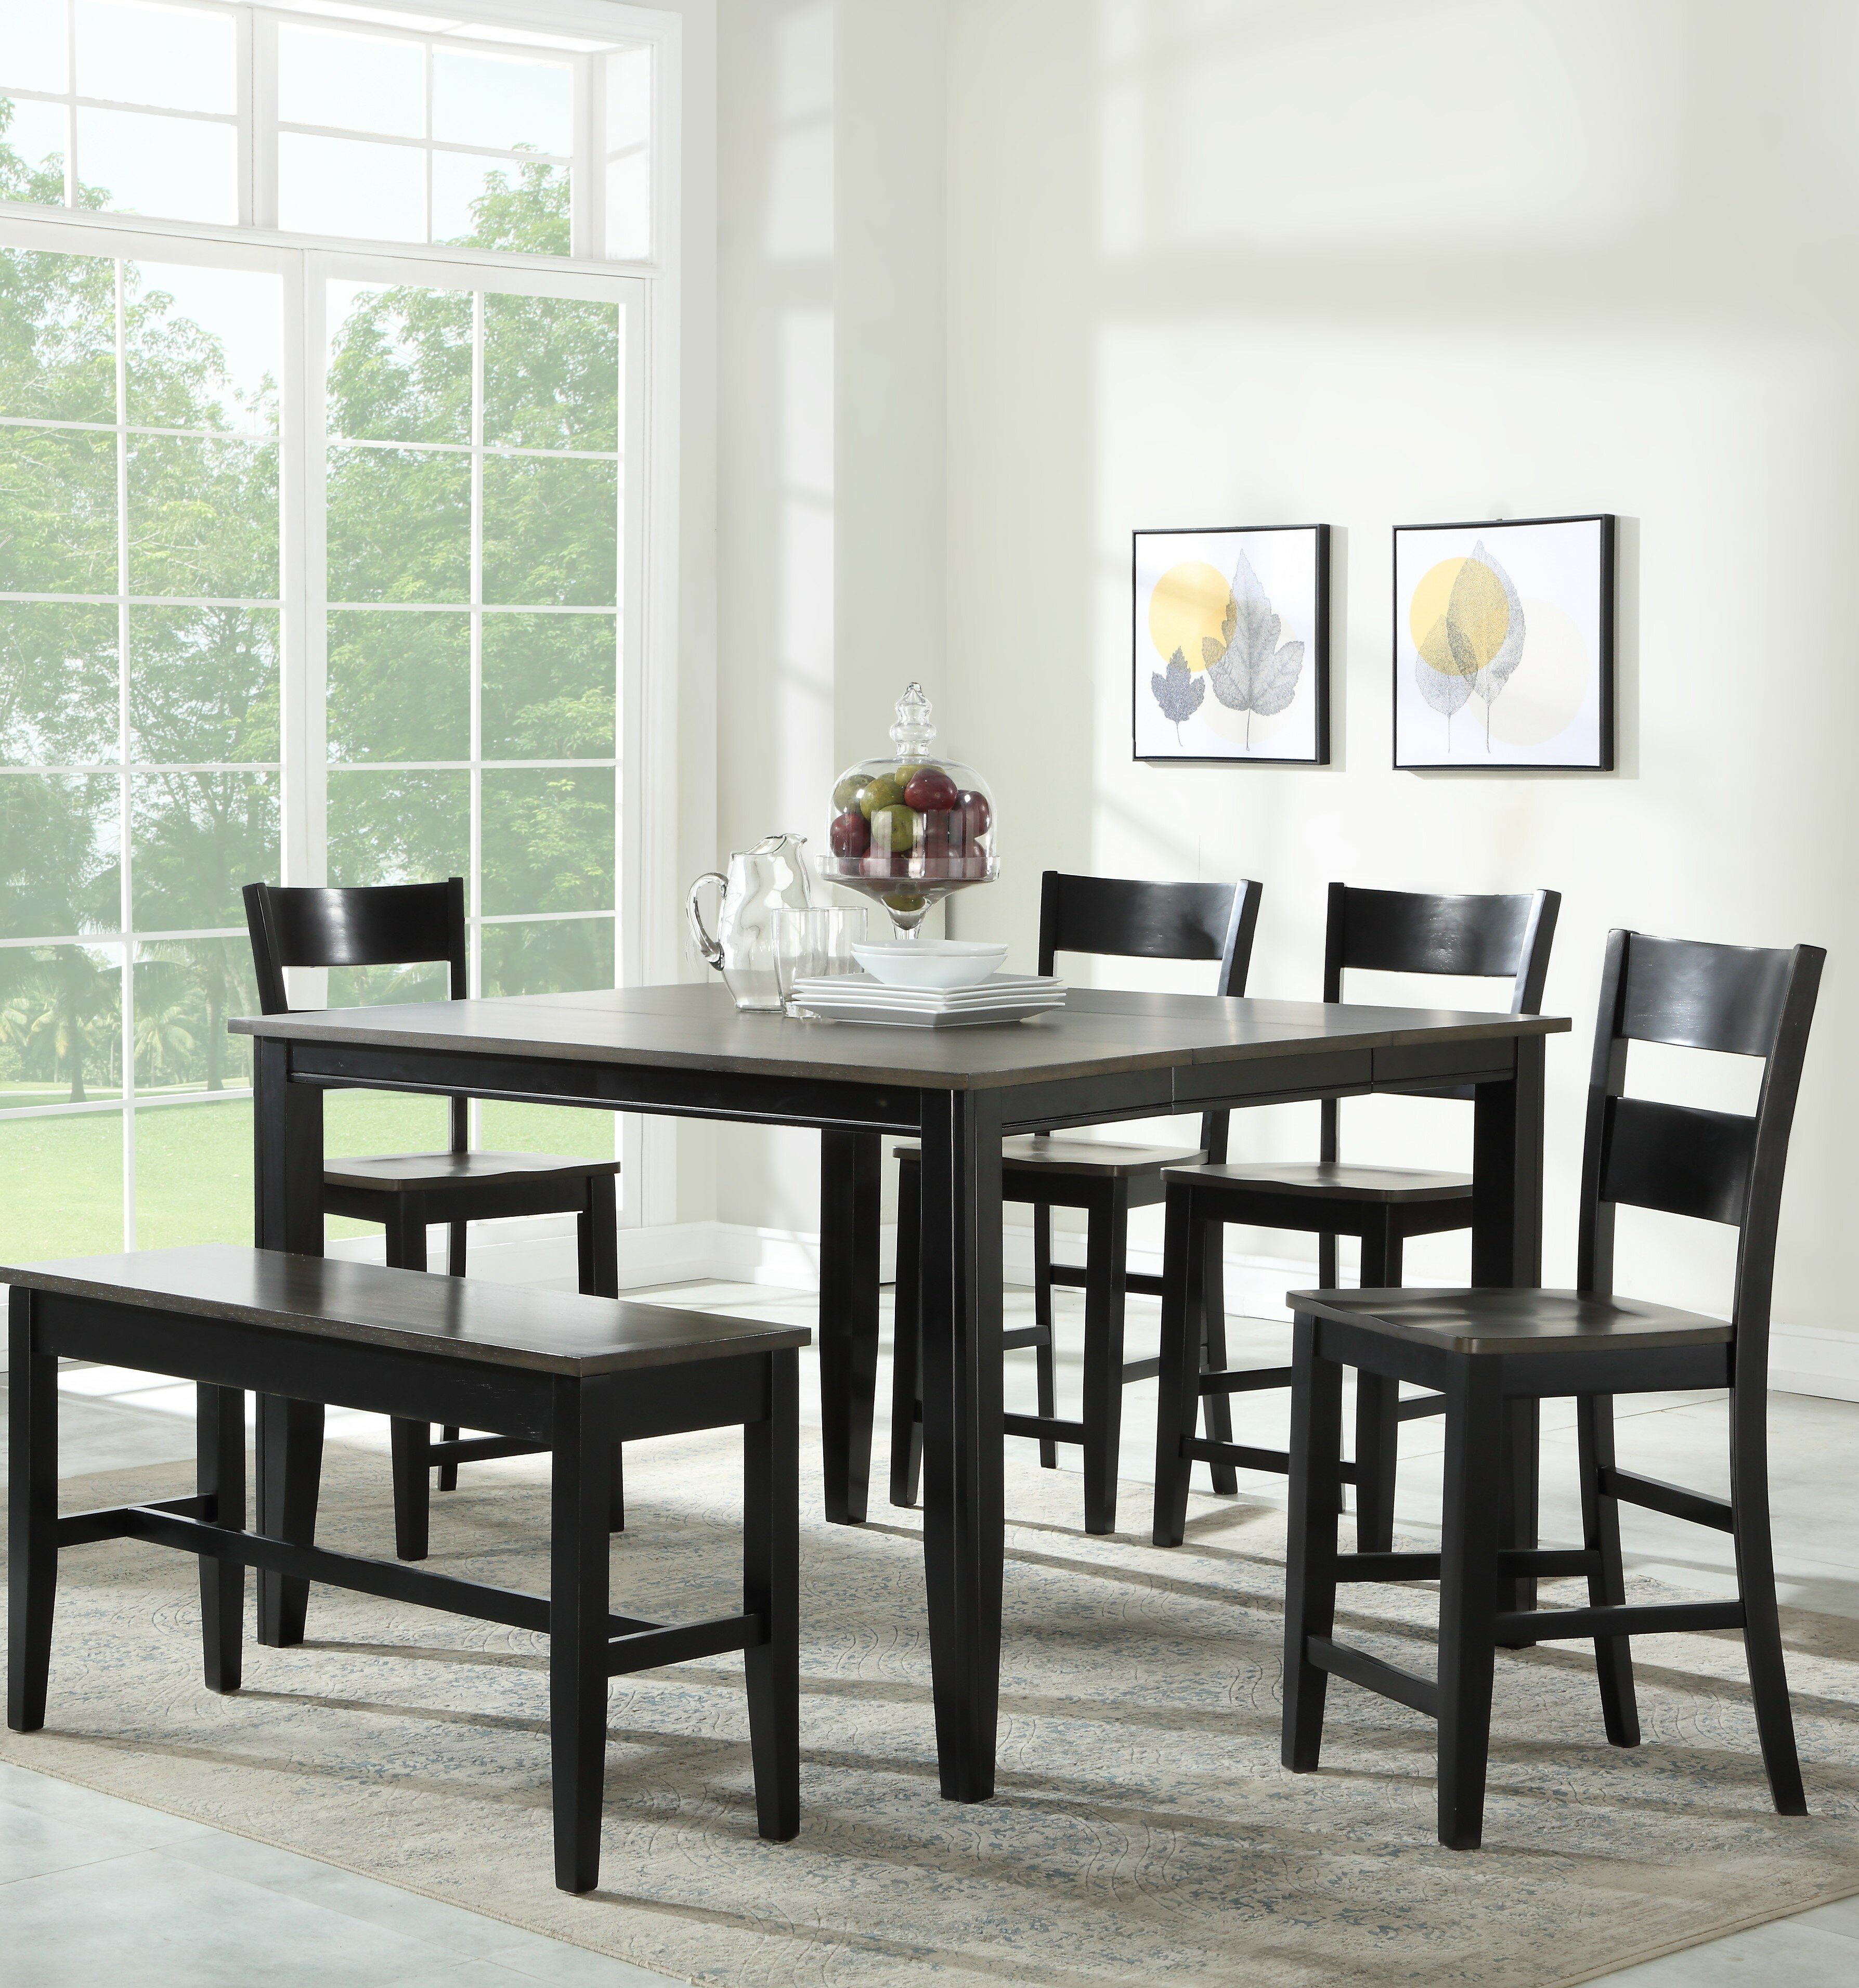 Red Barrel Studio Mcdonagh 5 Piece Counter Height Extendable Dining Set Reviews Wayfair